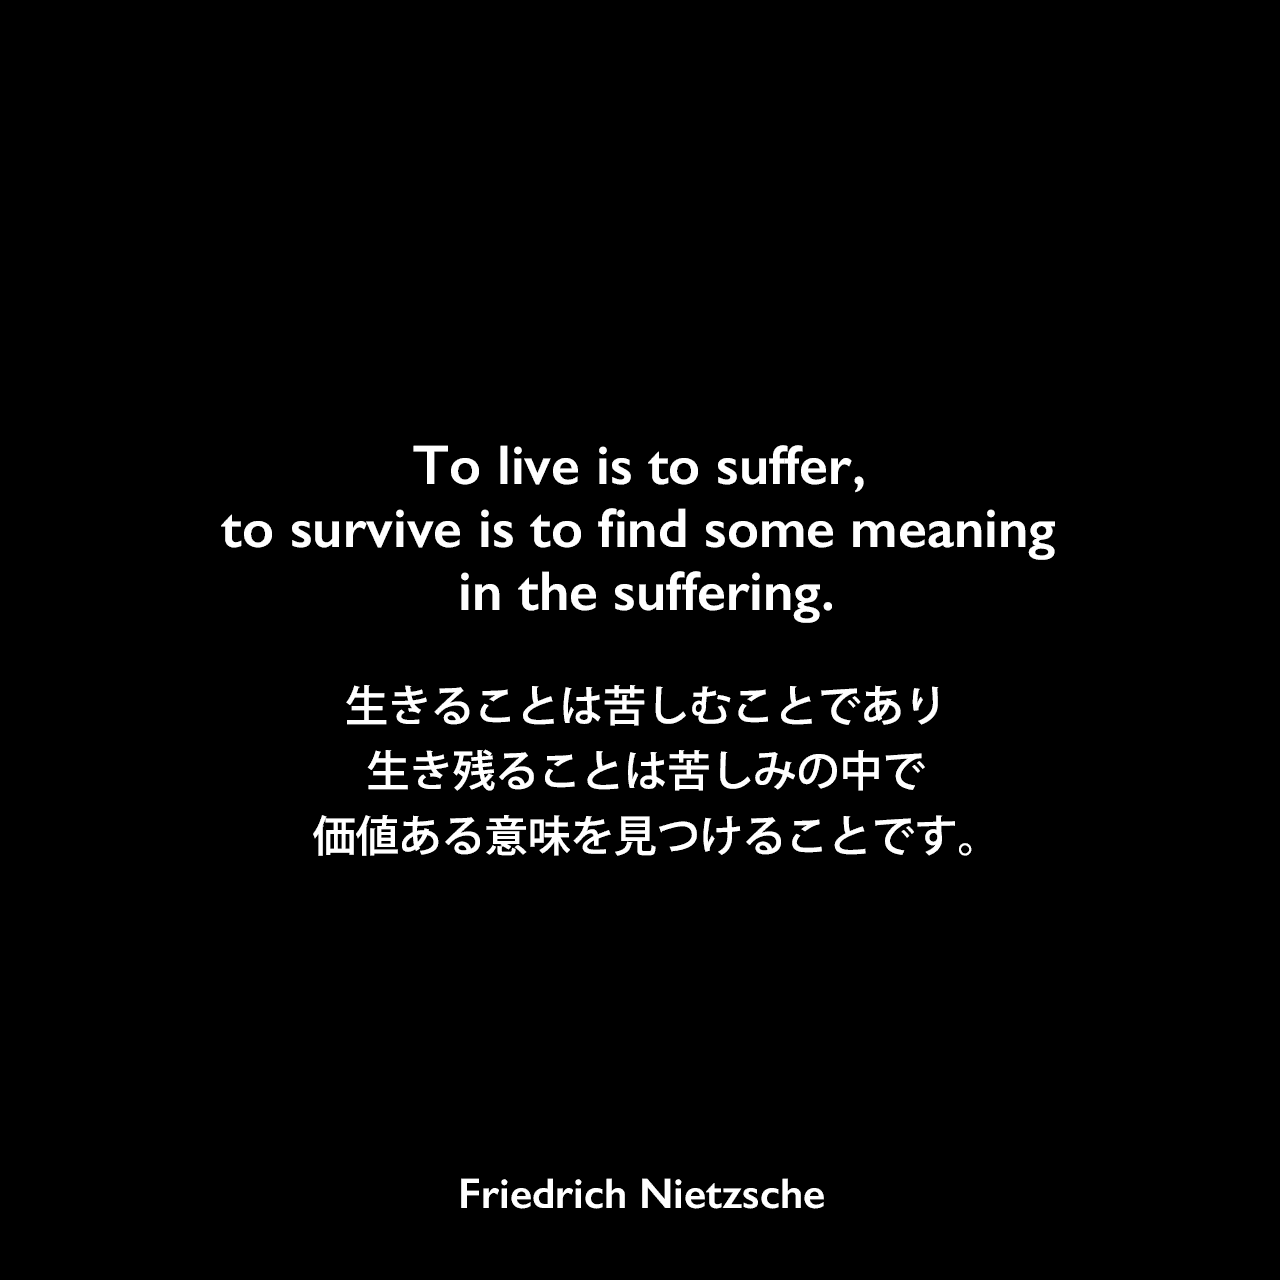 To live is to suffer, to survive is to find some meaning in the suffering.生きることは苦しむことであり、生き残ることは苦しみの中でい価値ある意味を見つけることです。Friedrich Nietzsche